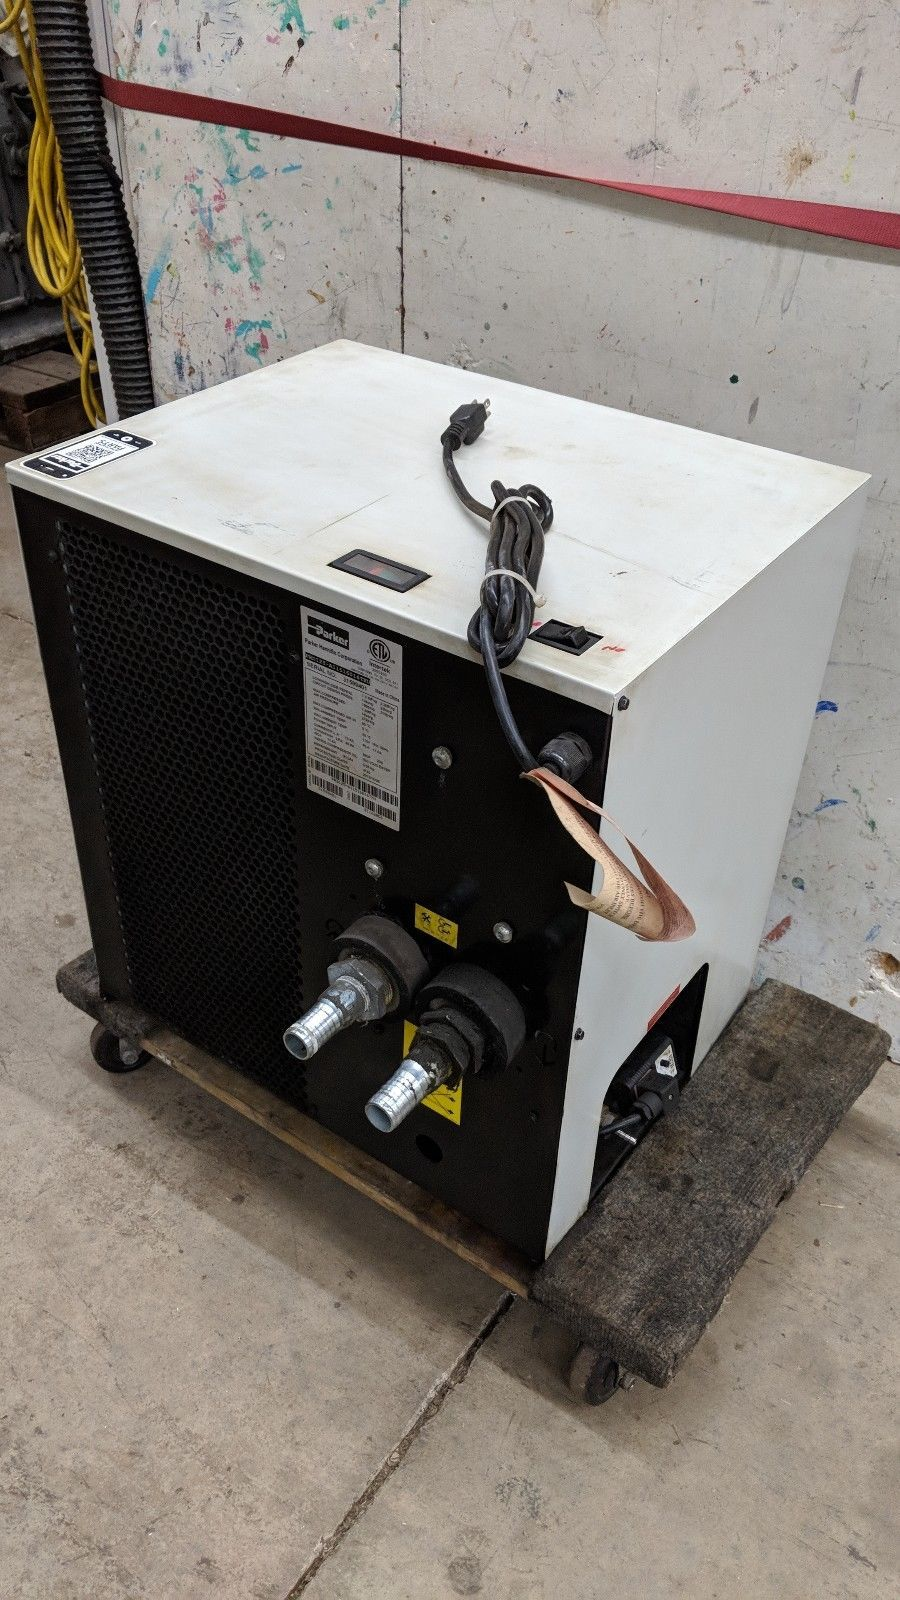 Parker PRD125 Refrigerated Air Dryer 115 Volts 1 Phase > up to 125cfm compres